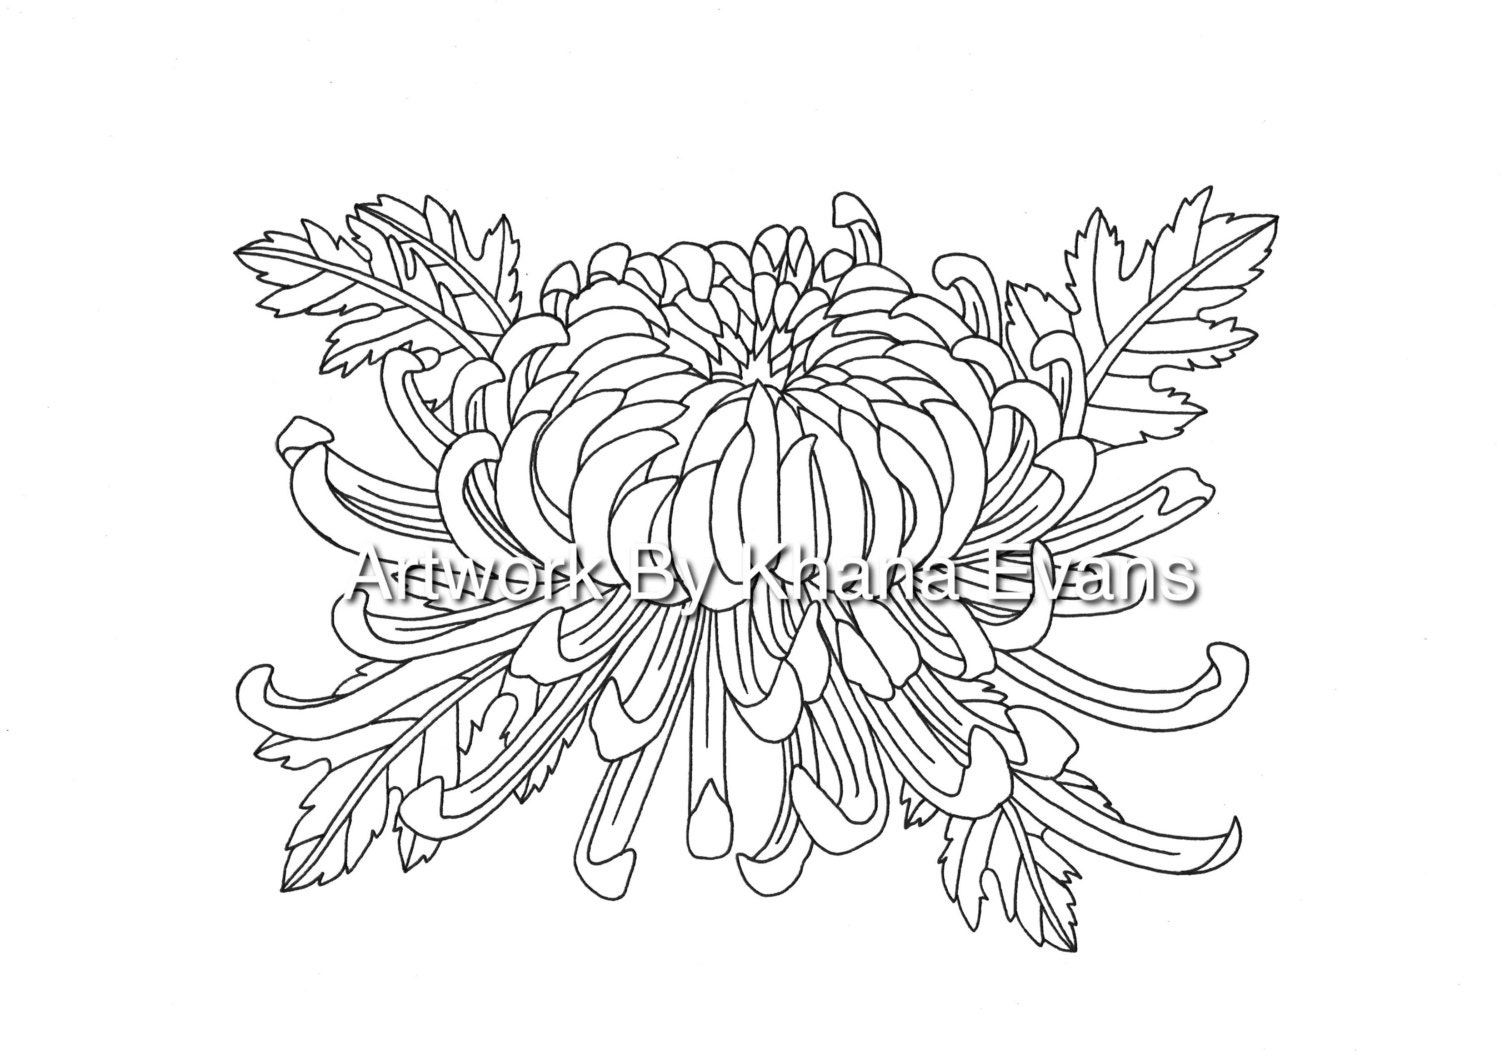 Chrysanthemum Flower Tattoo Design PDF A4 Printout Colouring | Etsy